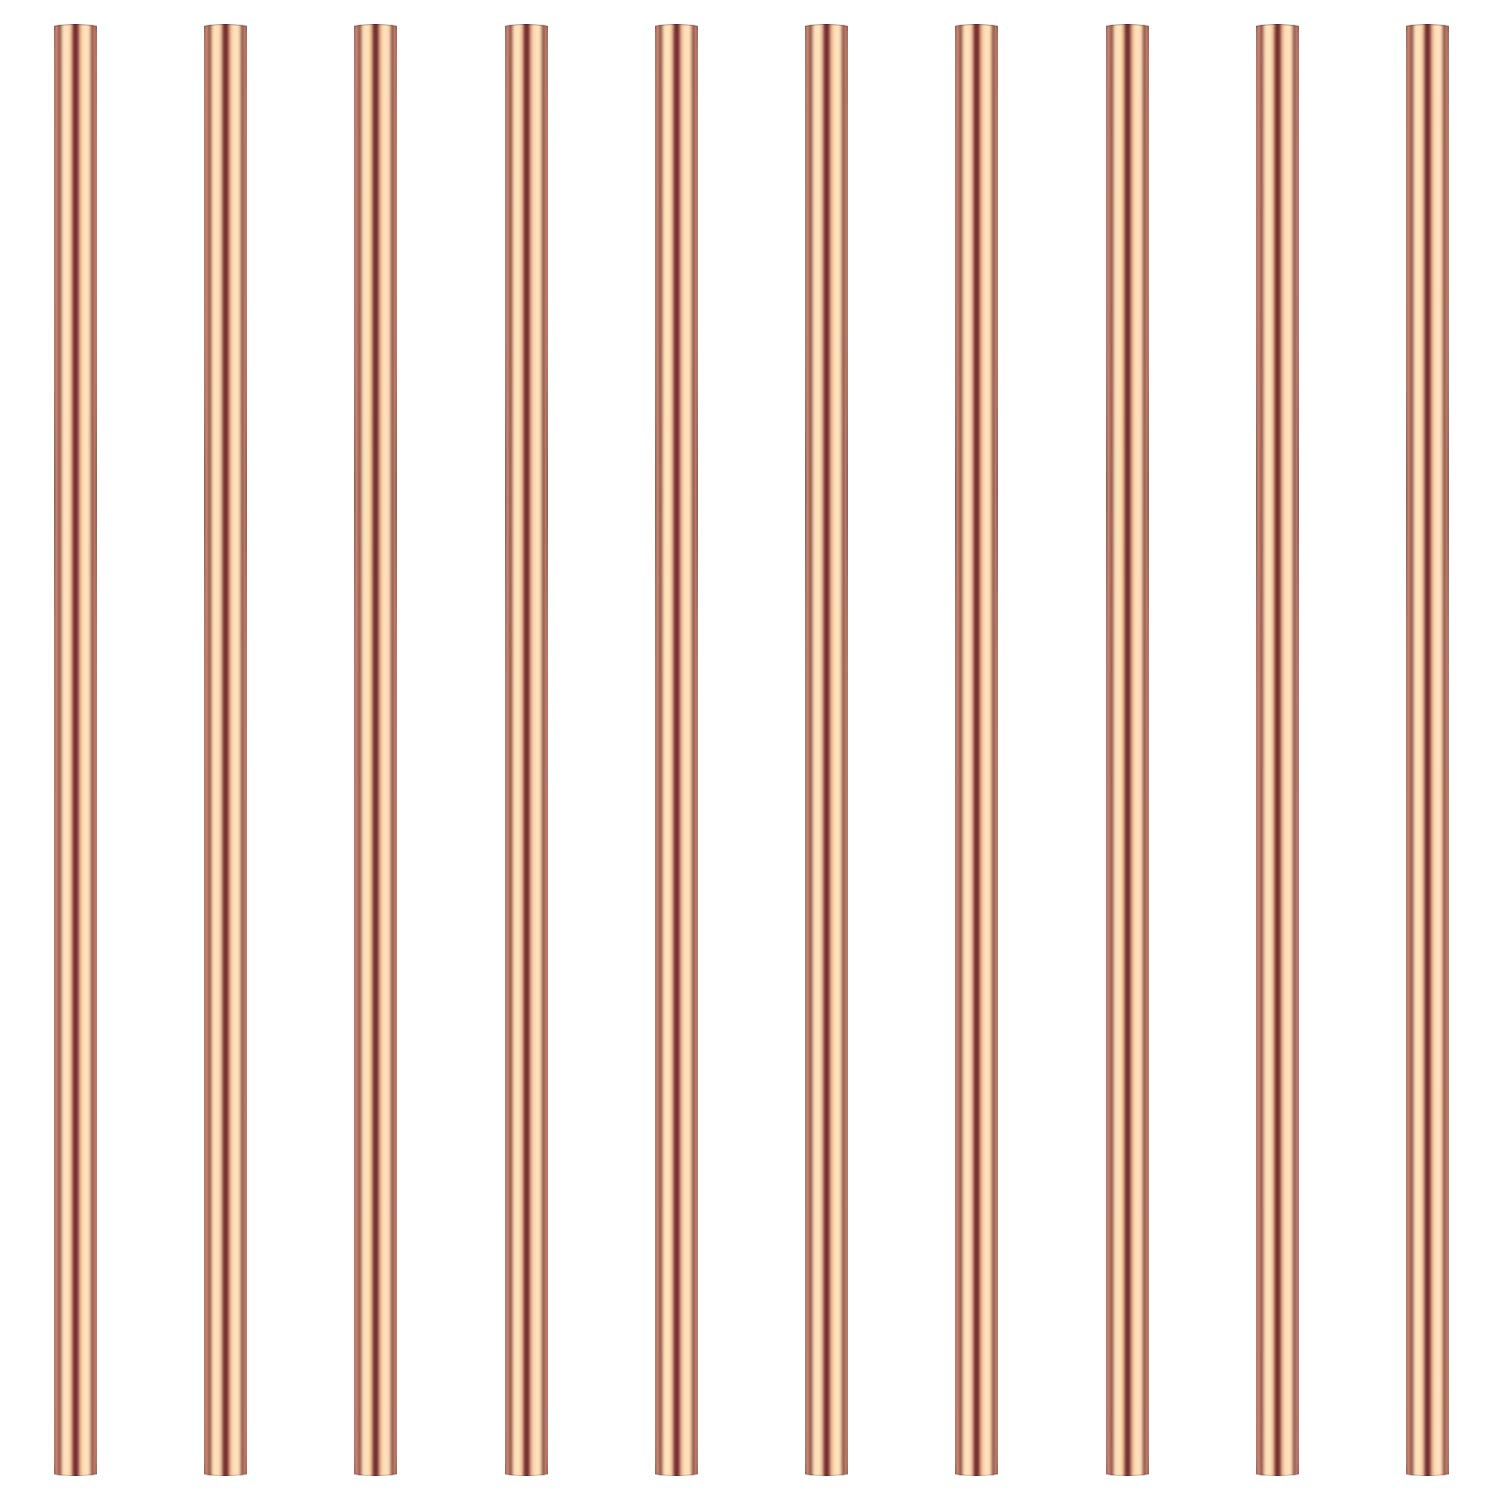 3mm Copper Round Rod 3mm in Diameter 100mm in Length Favordrory 10PCS Copper Round Rods Lathe Bar Stock